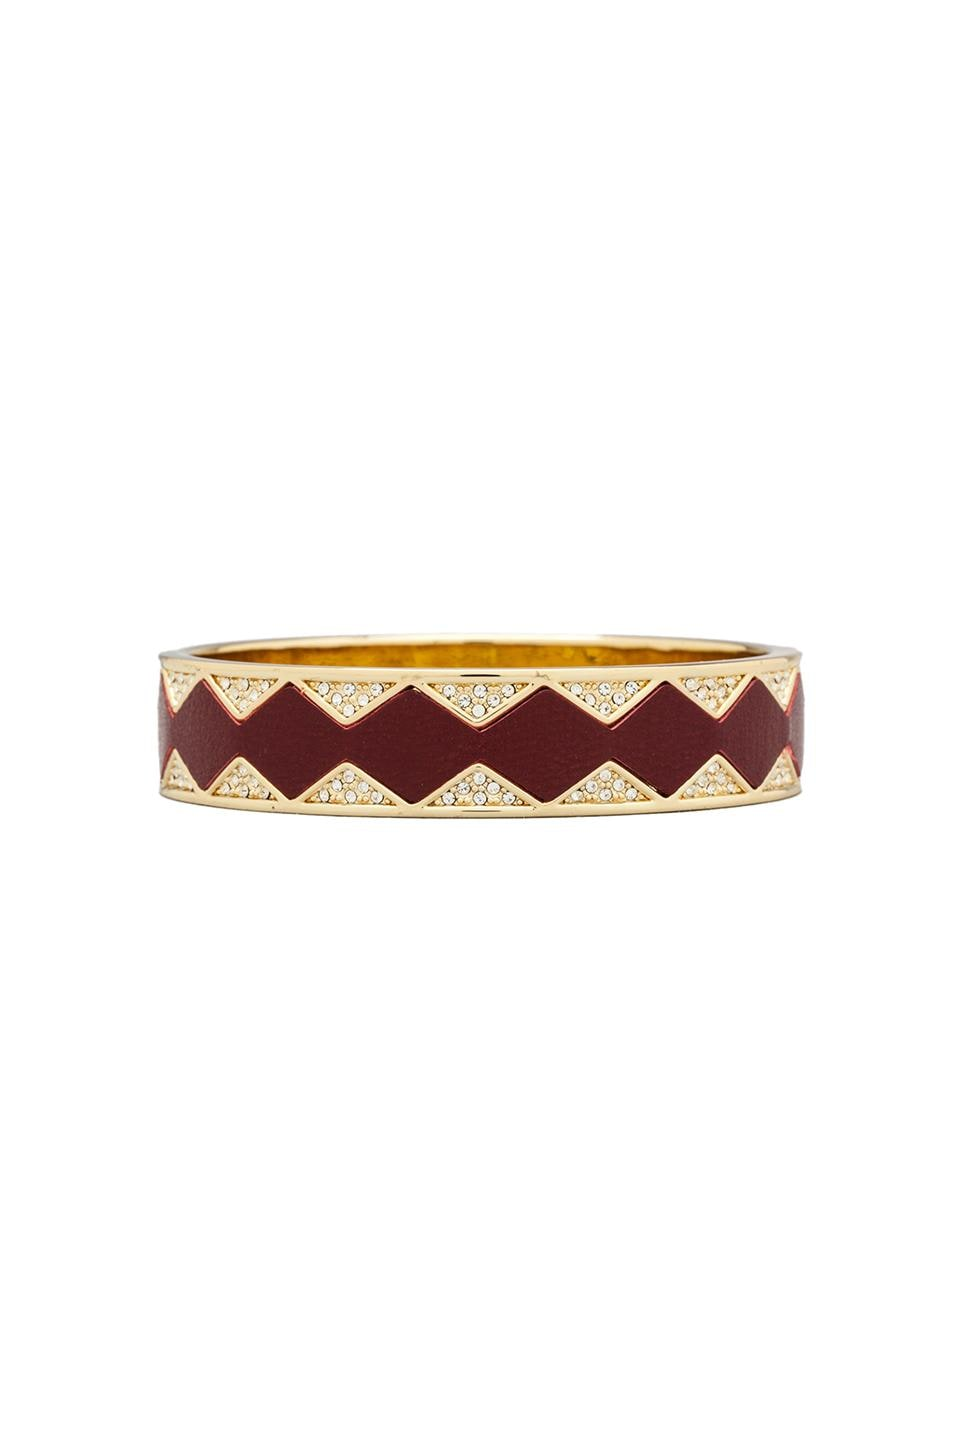 House of Harlow Sunburst Bangle in Gold Tone Cranberry